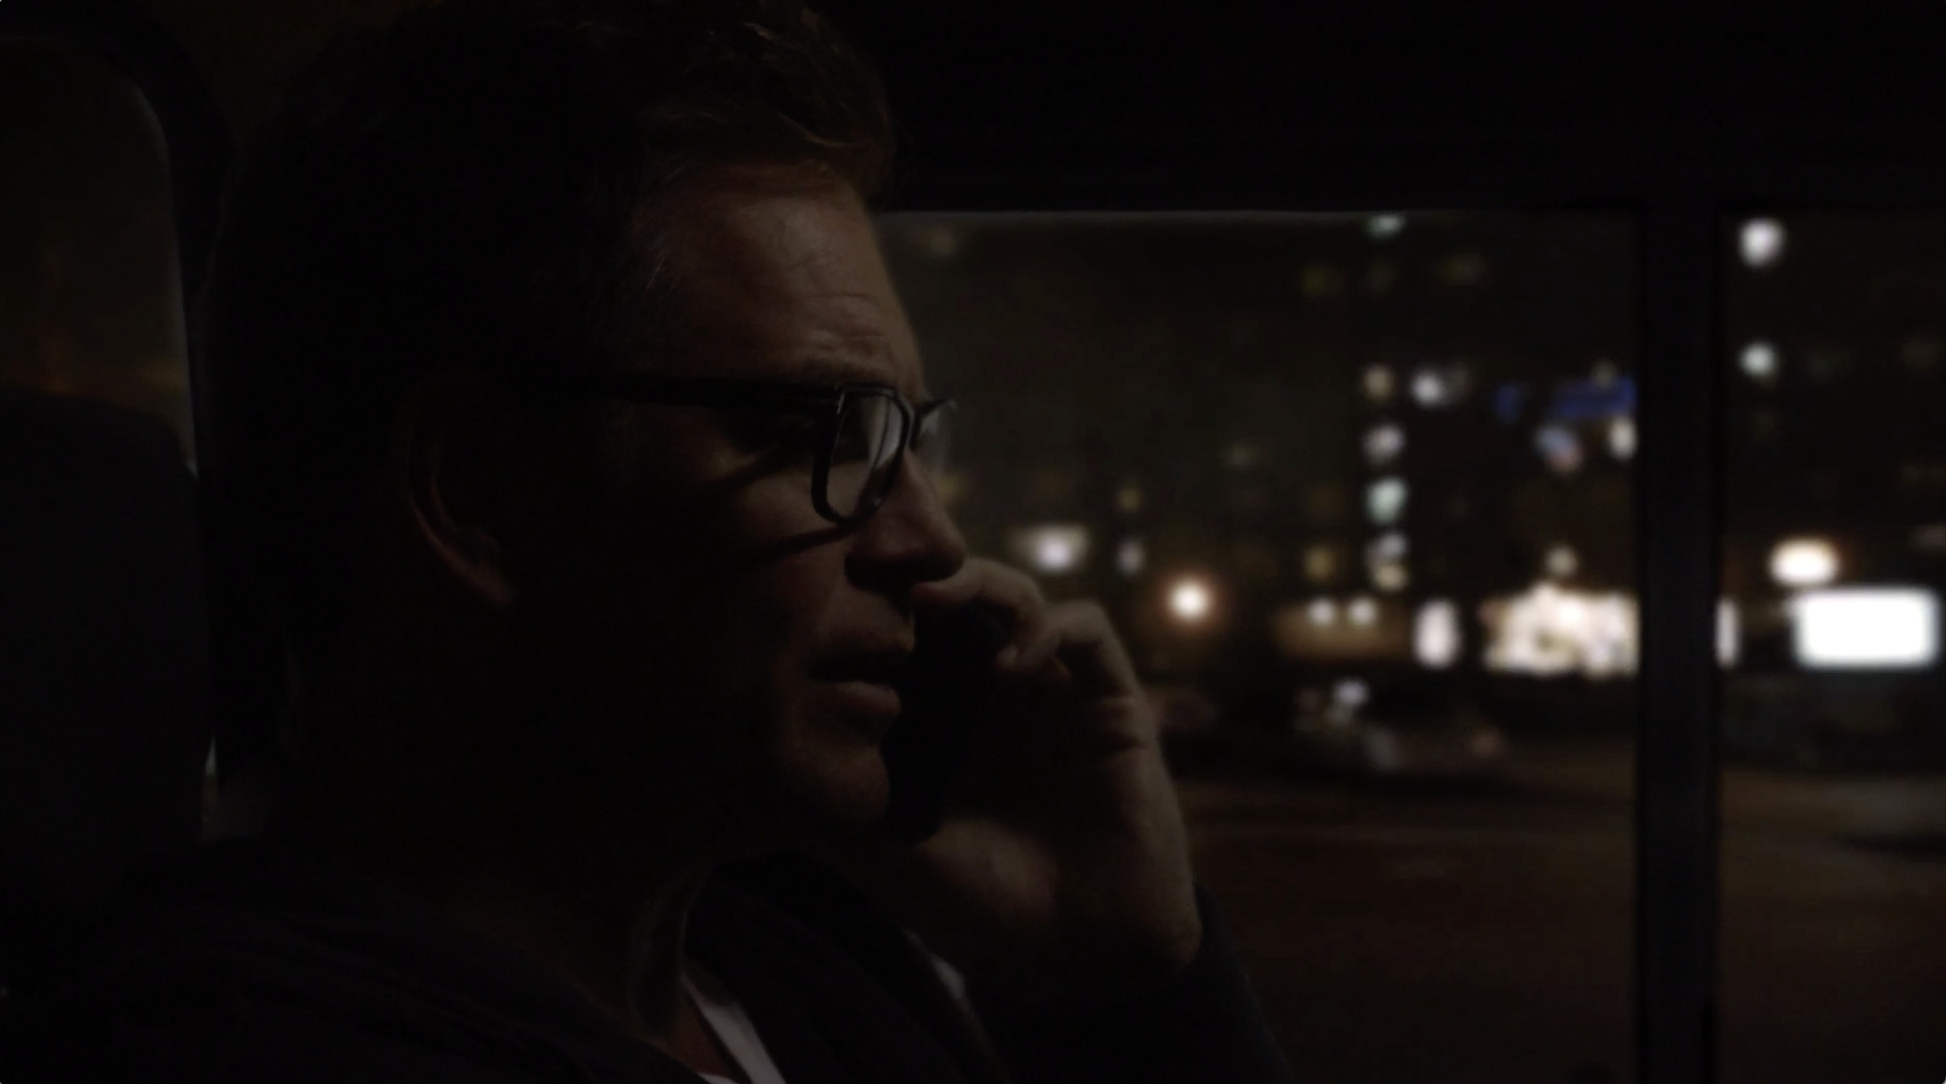 Bull Driving Footage New York City S03E01.png